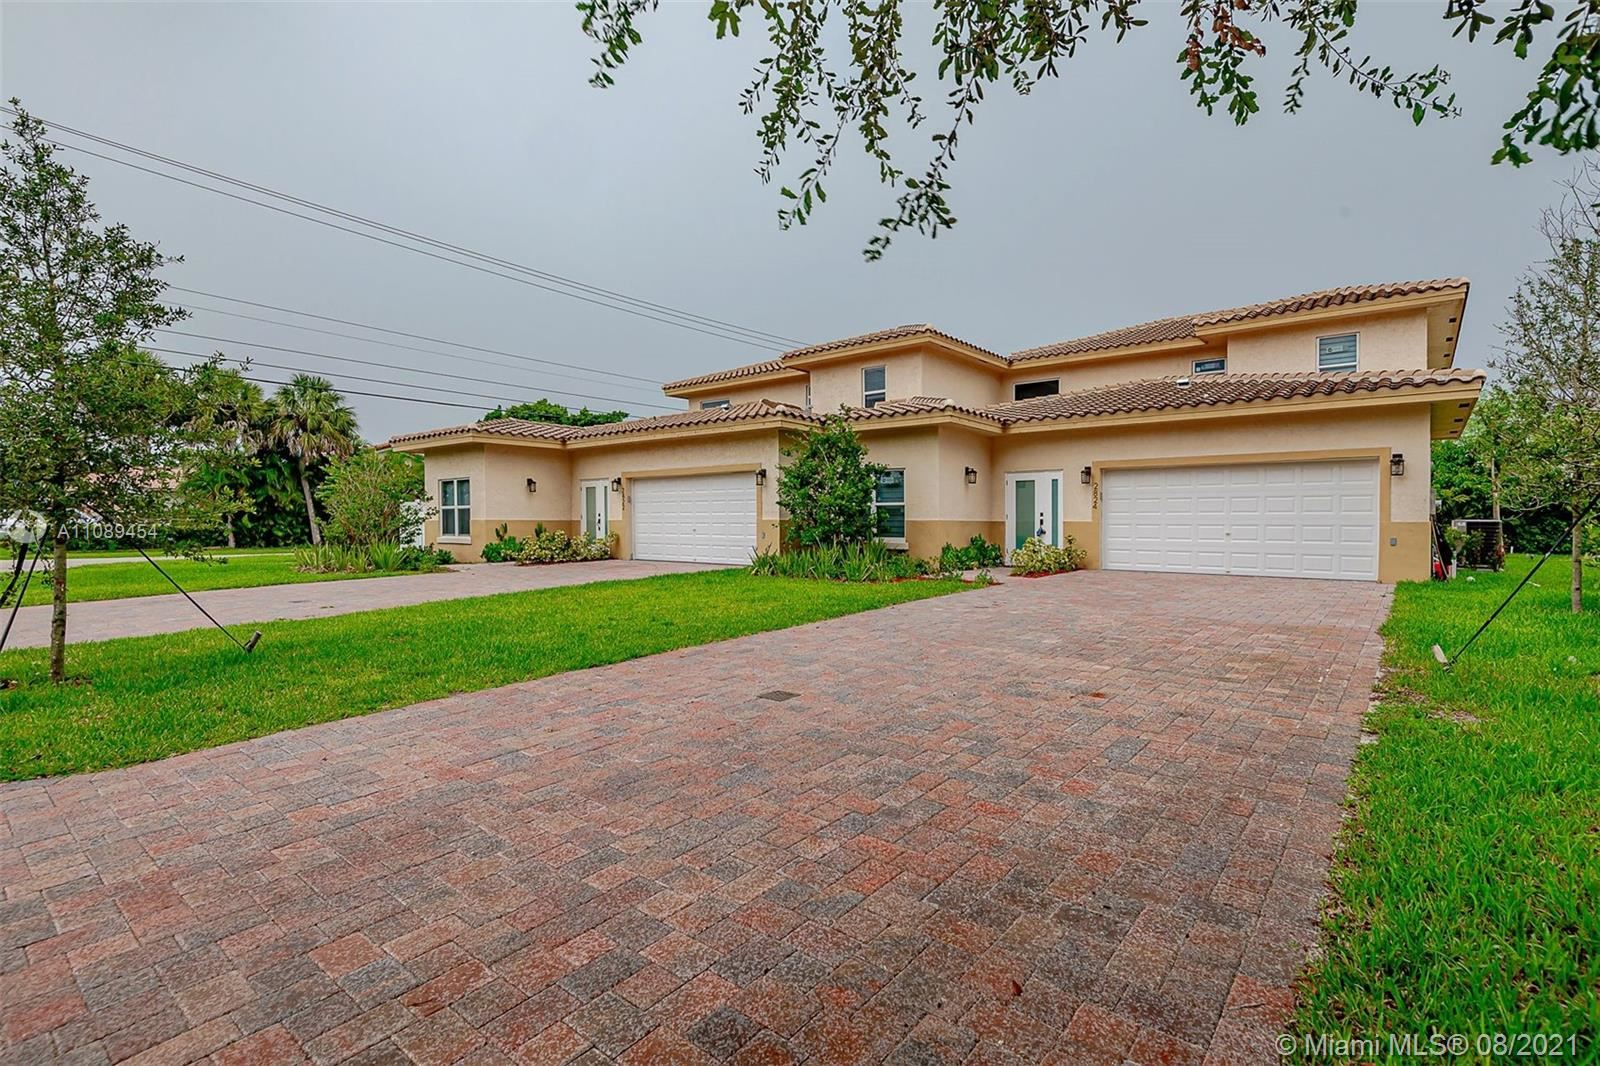 2824 NW 91st Ave, Coral Springs, FL 33065 - #: A11089454